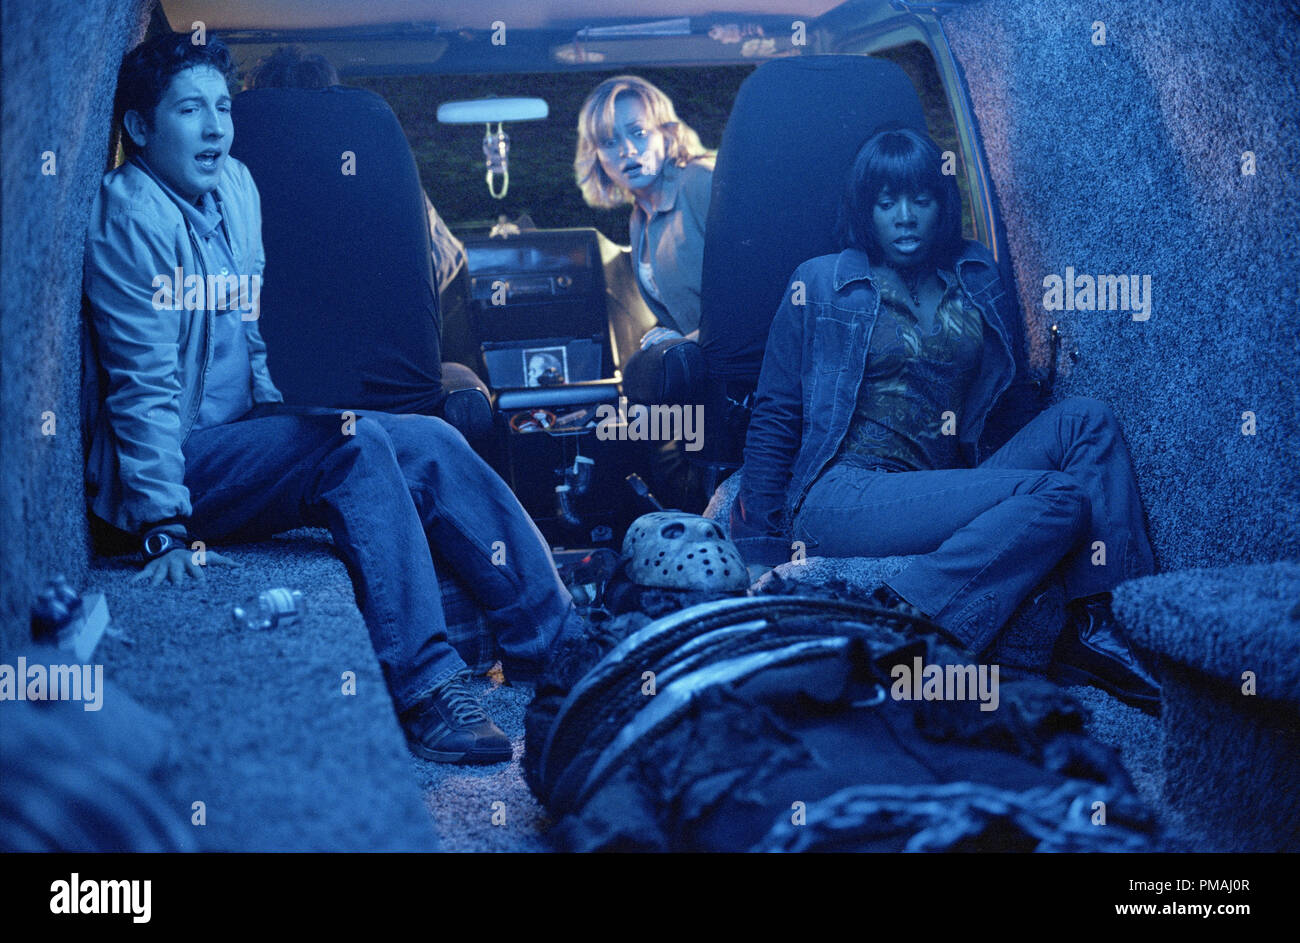 (left to right) Linderman (Christopher George Marquette), Lori (Monica Keena) and Kia (Kelly Rowland) know that Jason (Ken Kirzinger) cannot stay tied up for long in New Line Cinema's ultimate showdown, FREDDY VS. JASON. 2003 - Stock Image